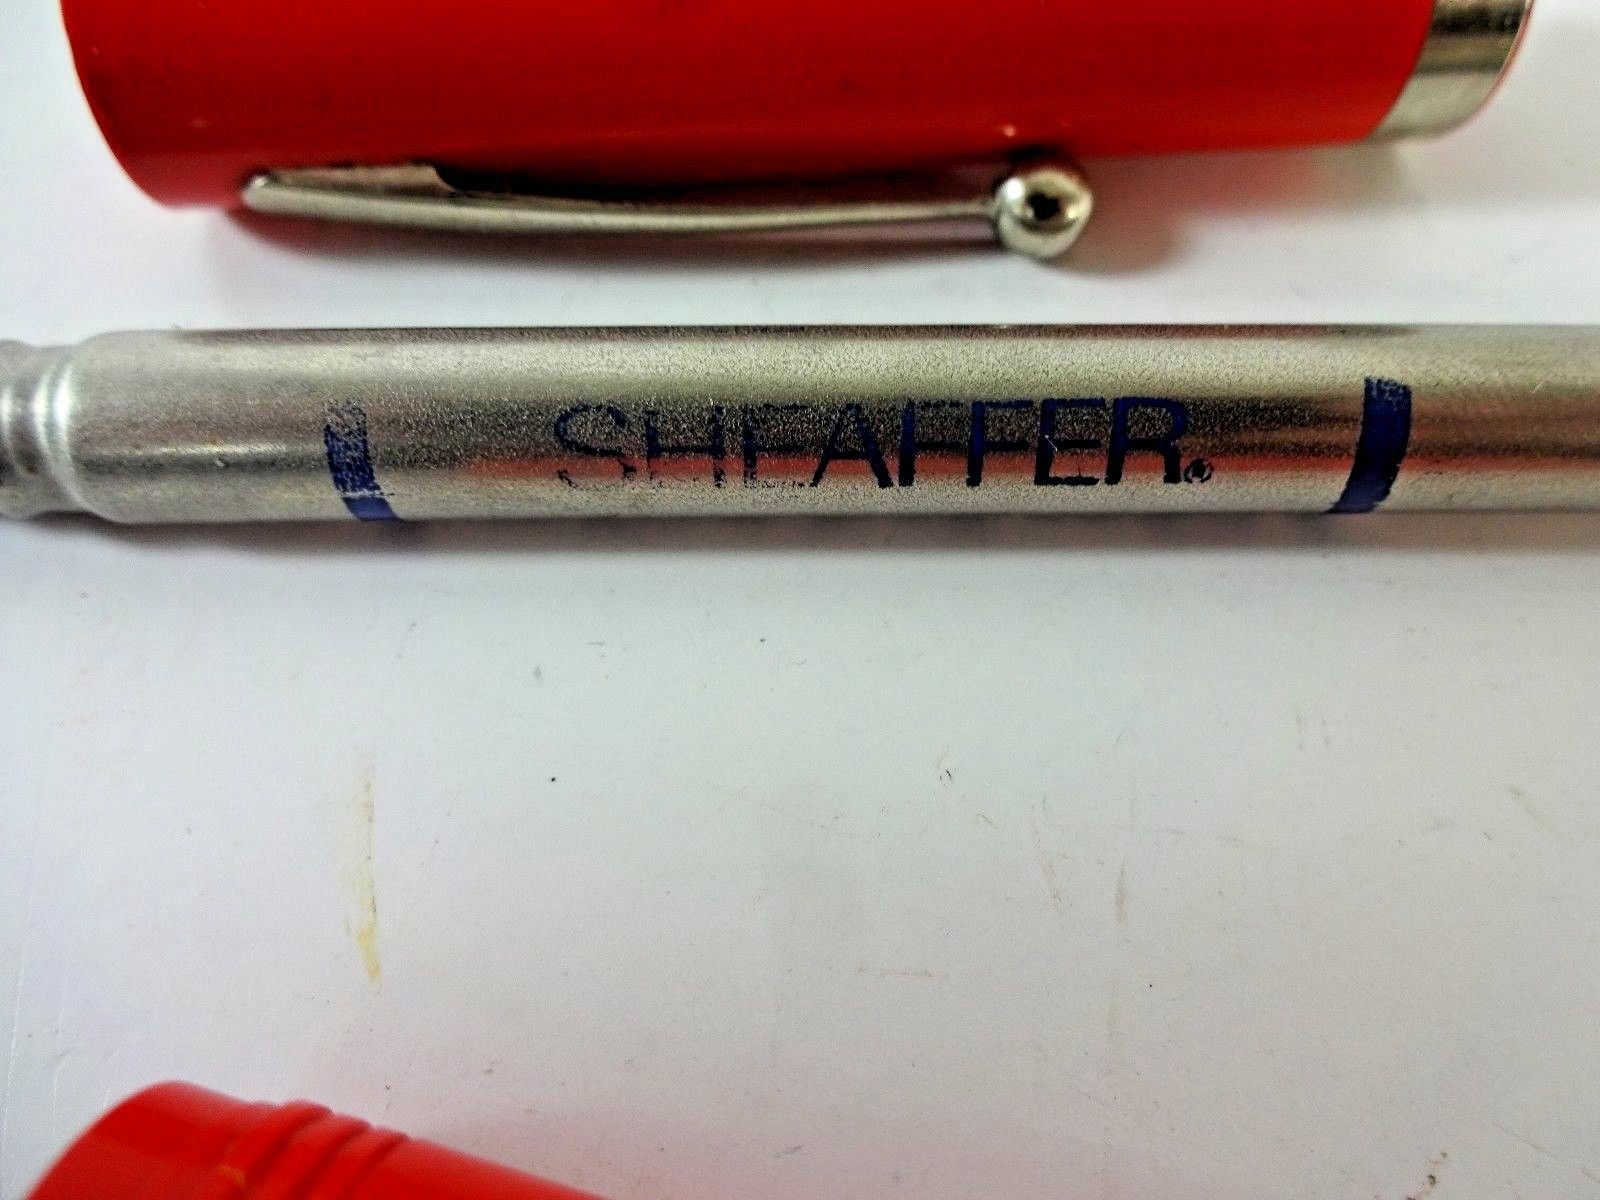 VTG Sheaffer No-Nonsense Rolling Ball Pen - Refillable - Red w/ Chrome Clip